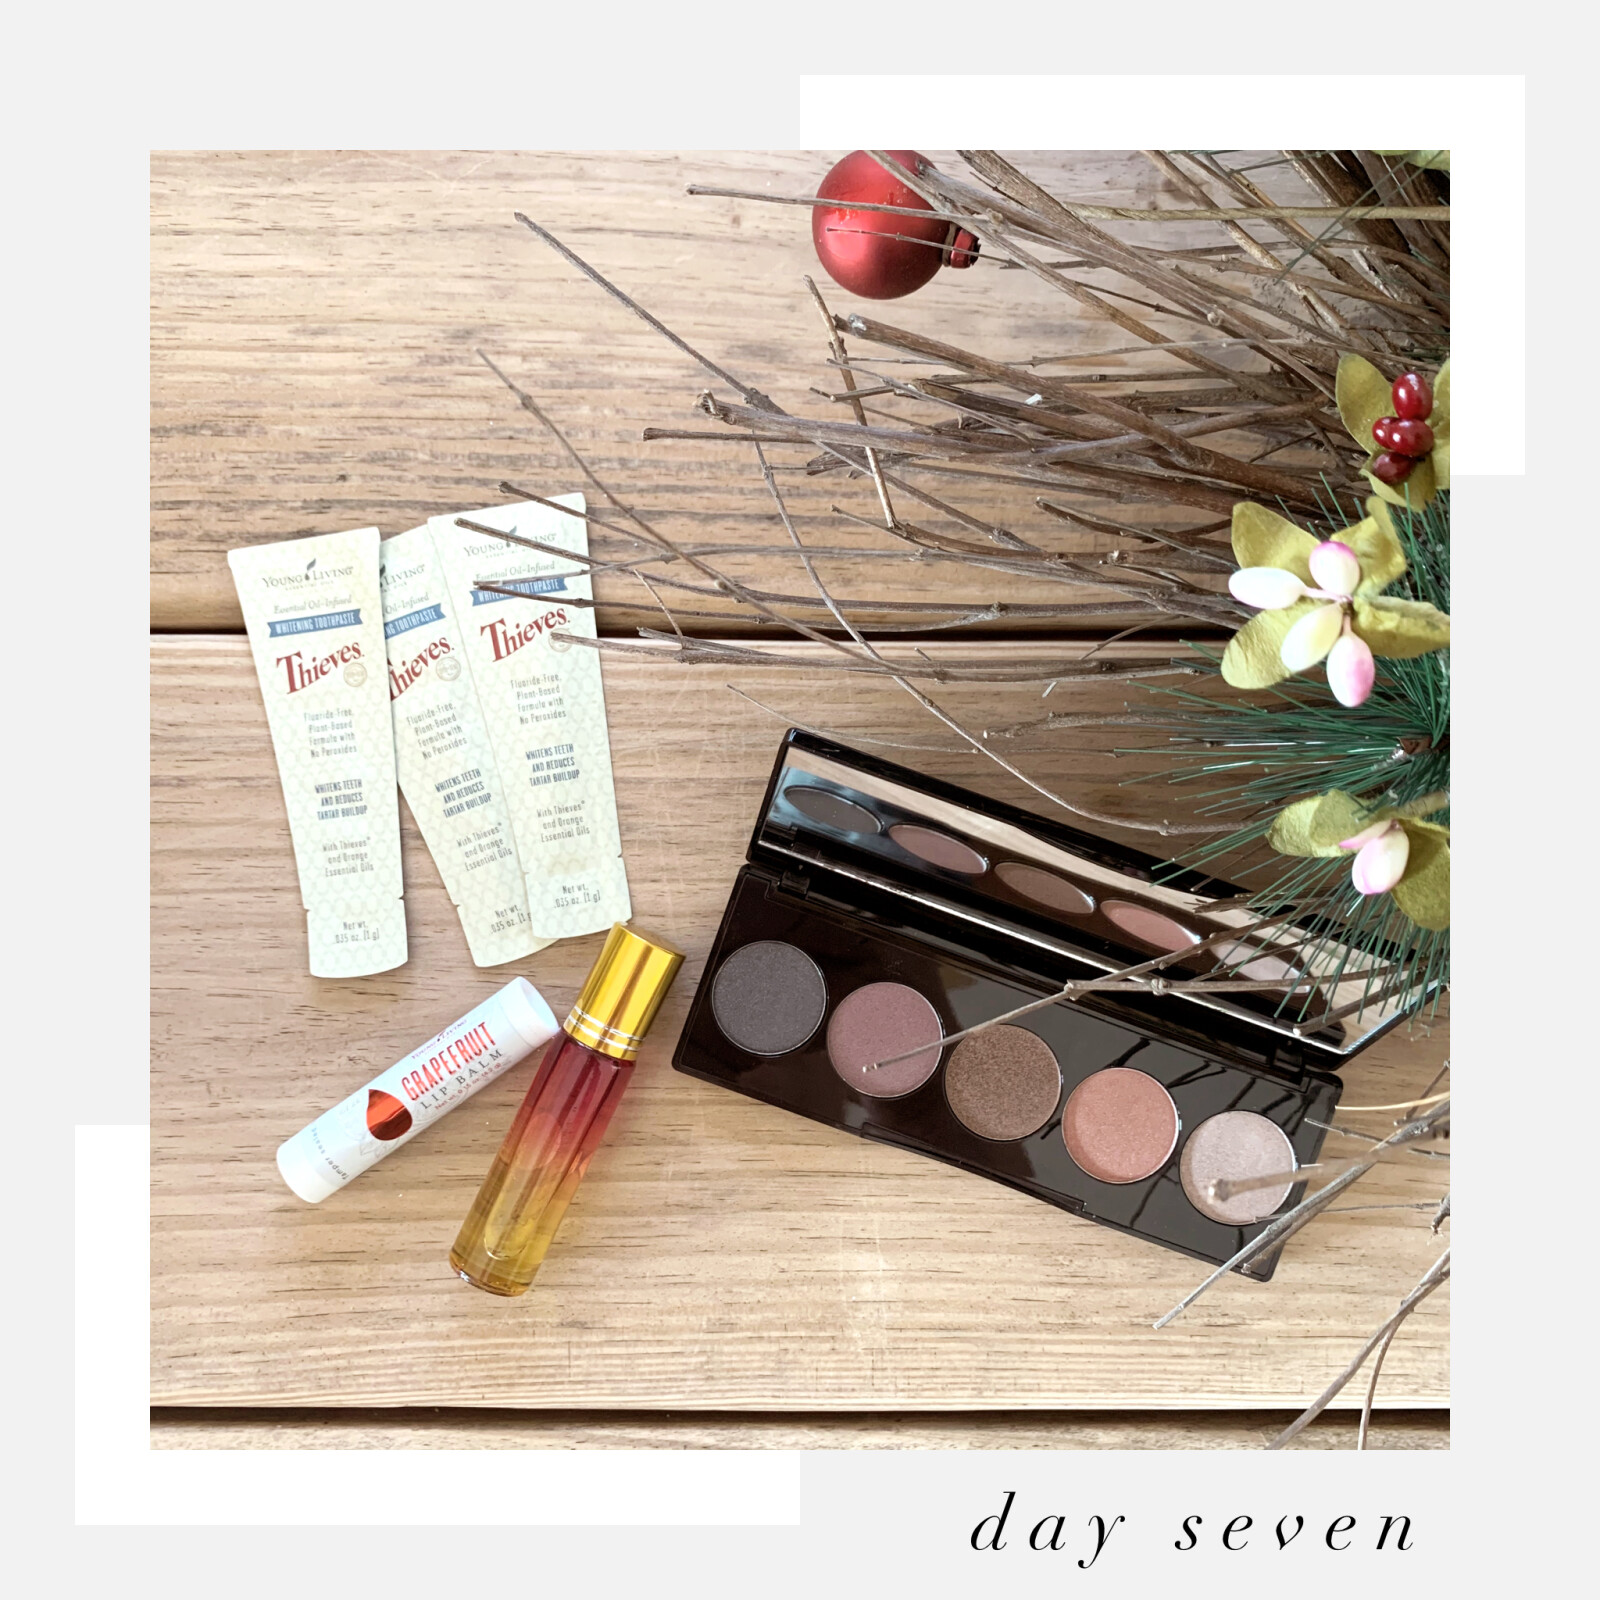 12 Days of Giveaways: Day 7 - Be Beautiful